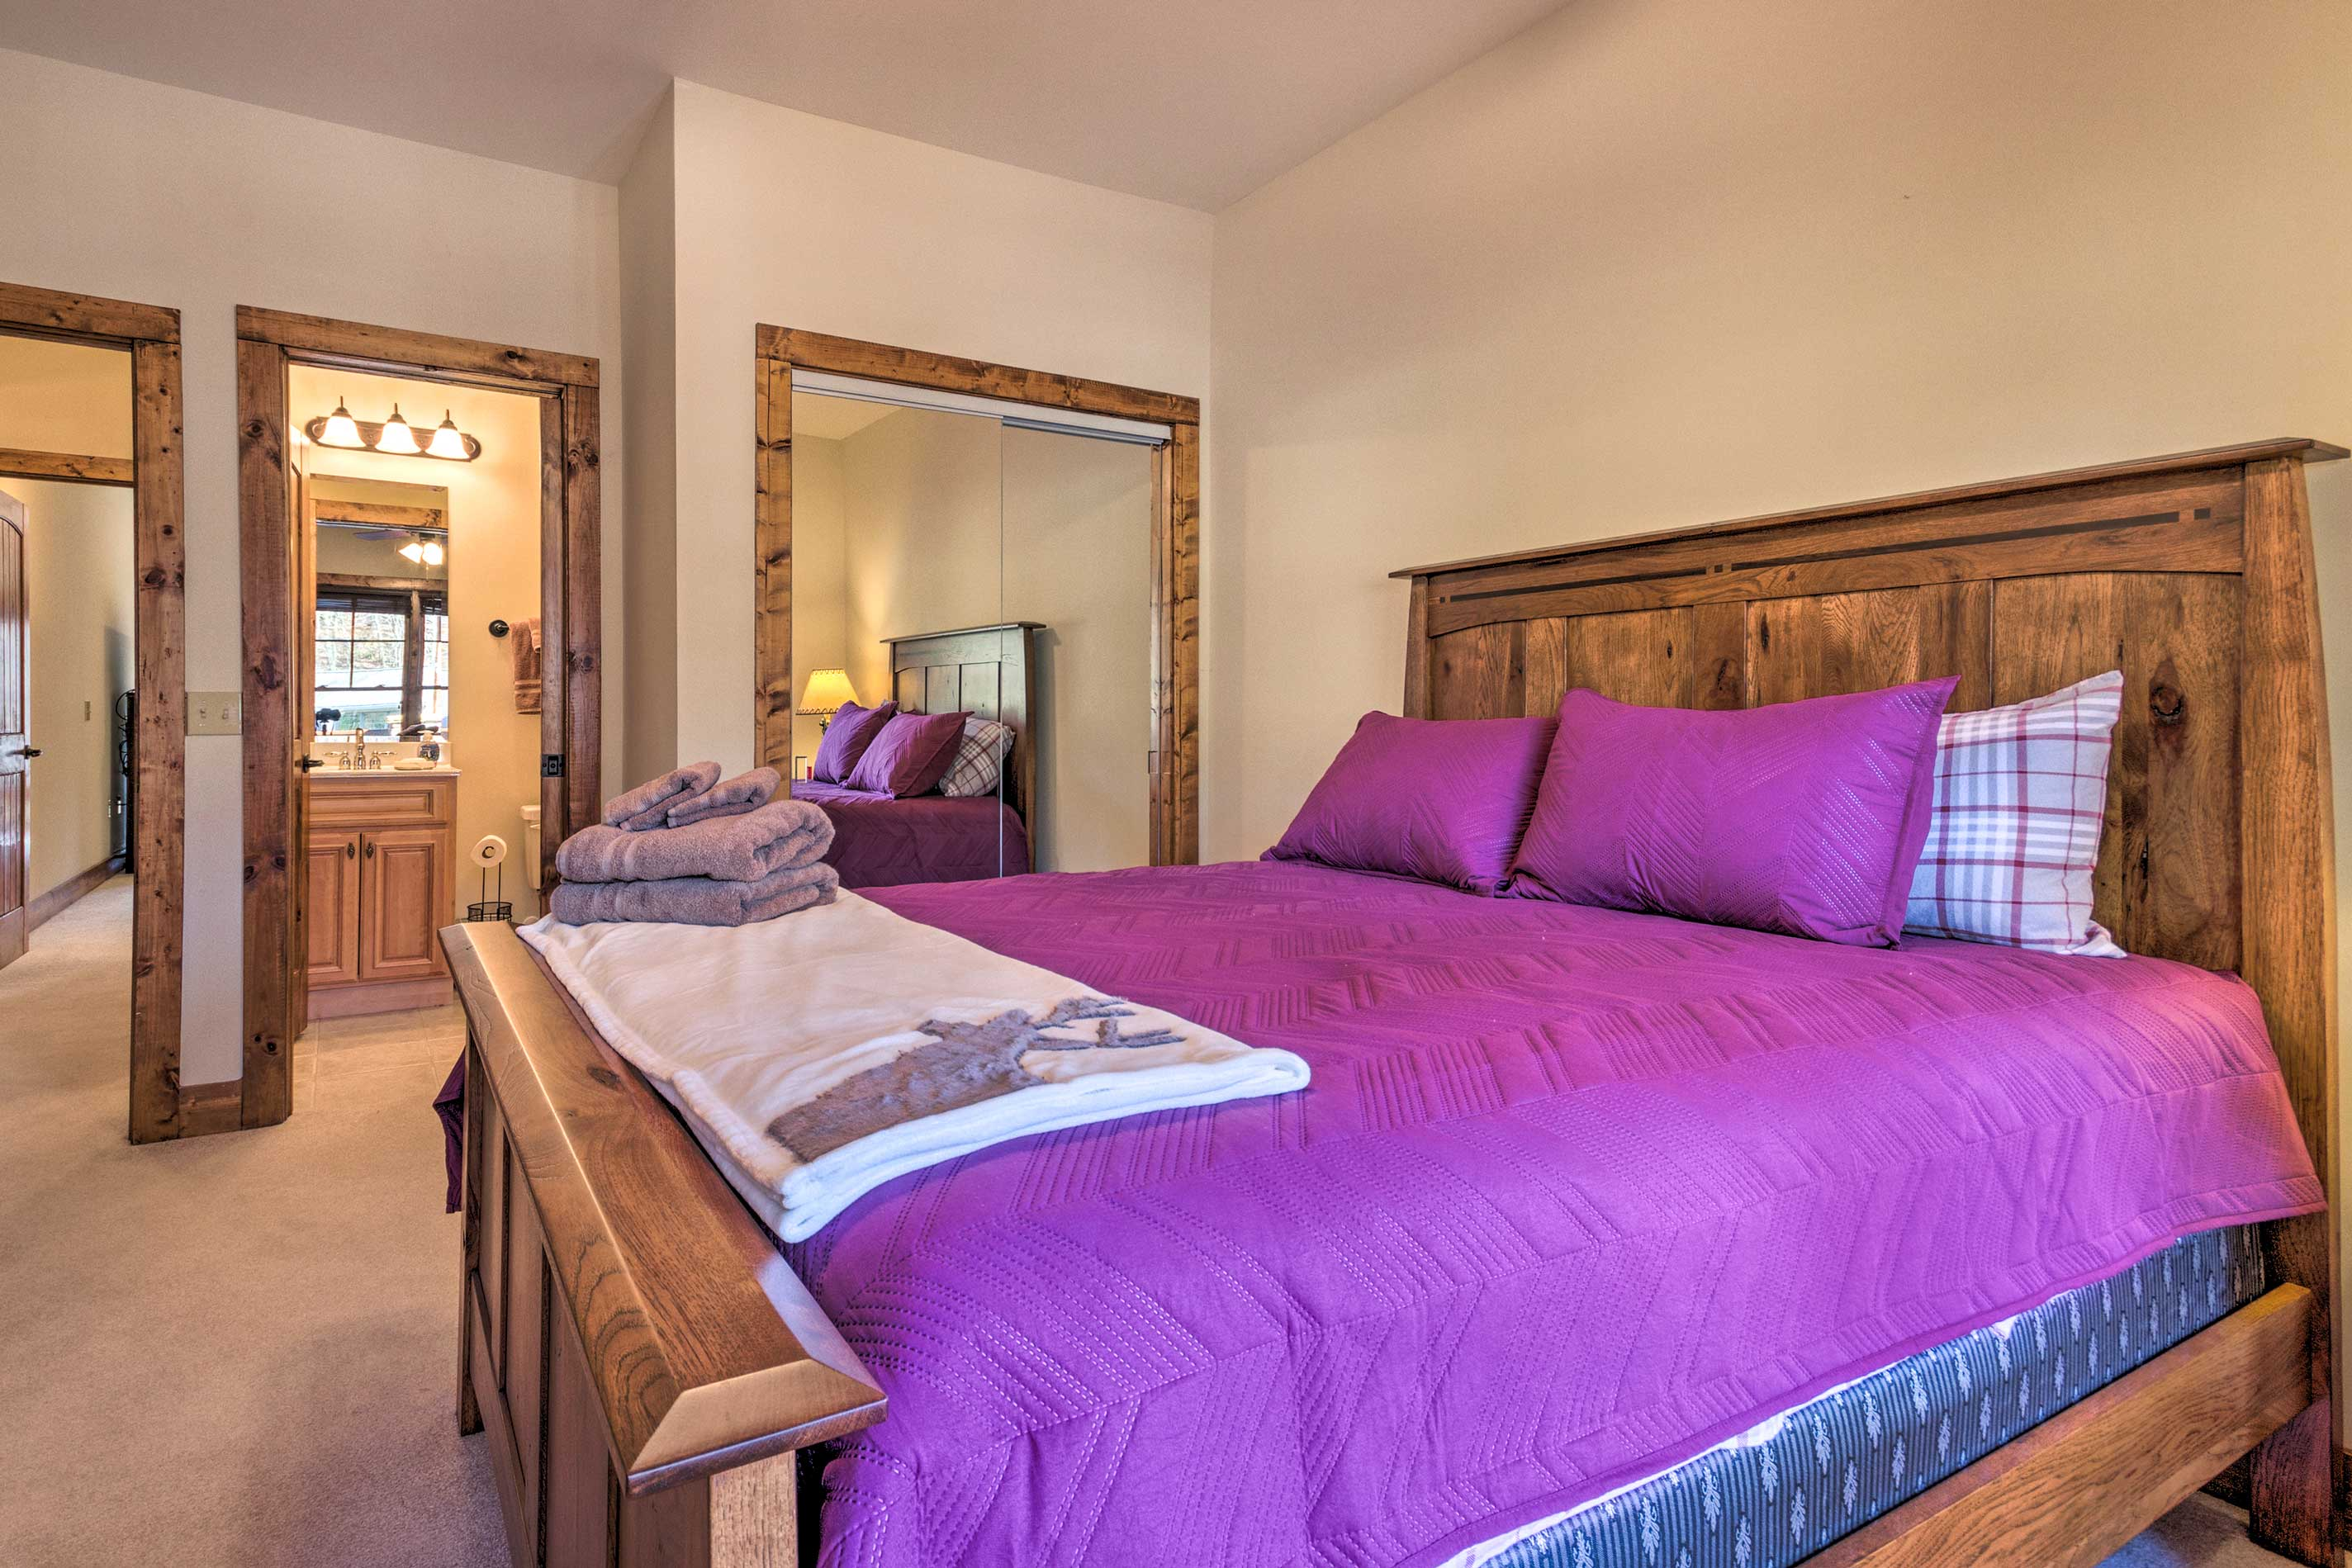 This bedroom also features a queen-sized bed.